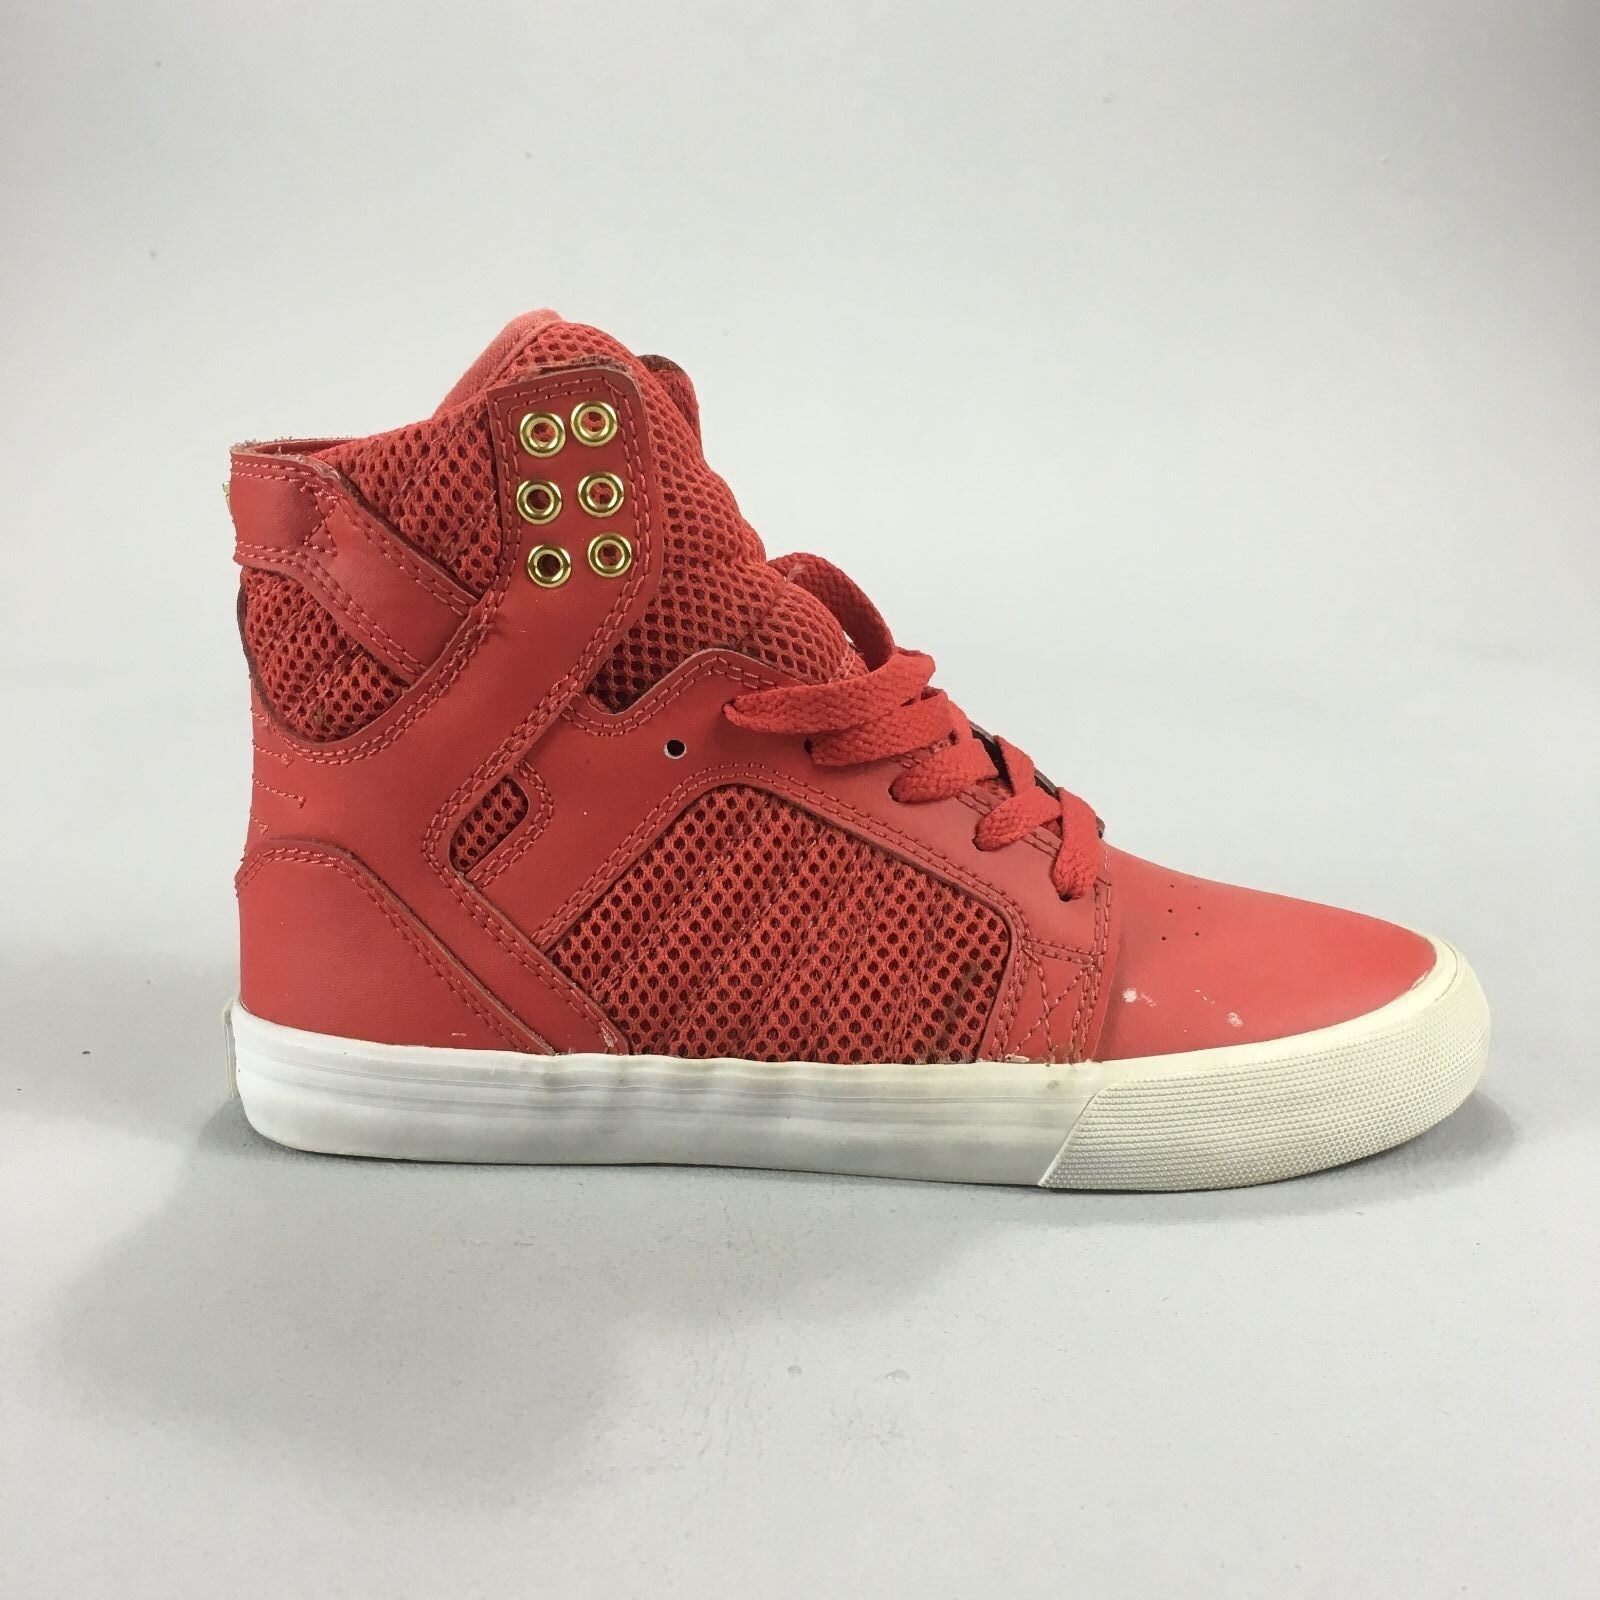 Details about Supra Skytop Womens Skate Shoes Trainers new in box Red Gold White  in UK size 4 ef7e2c83d